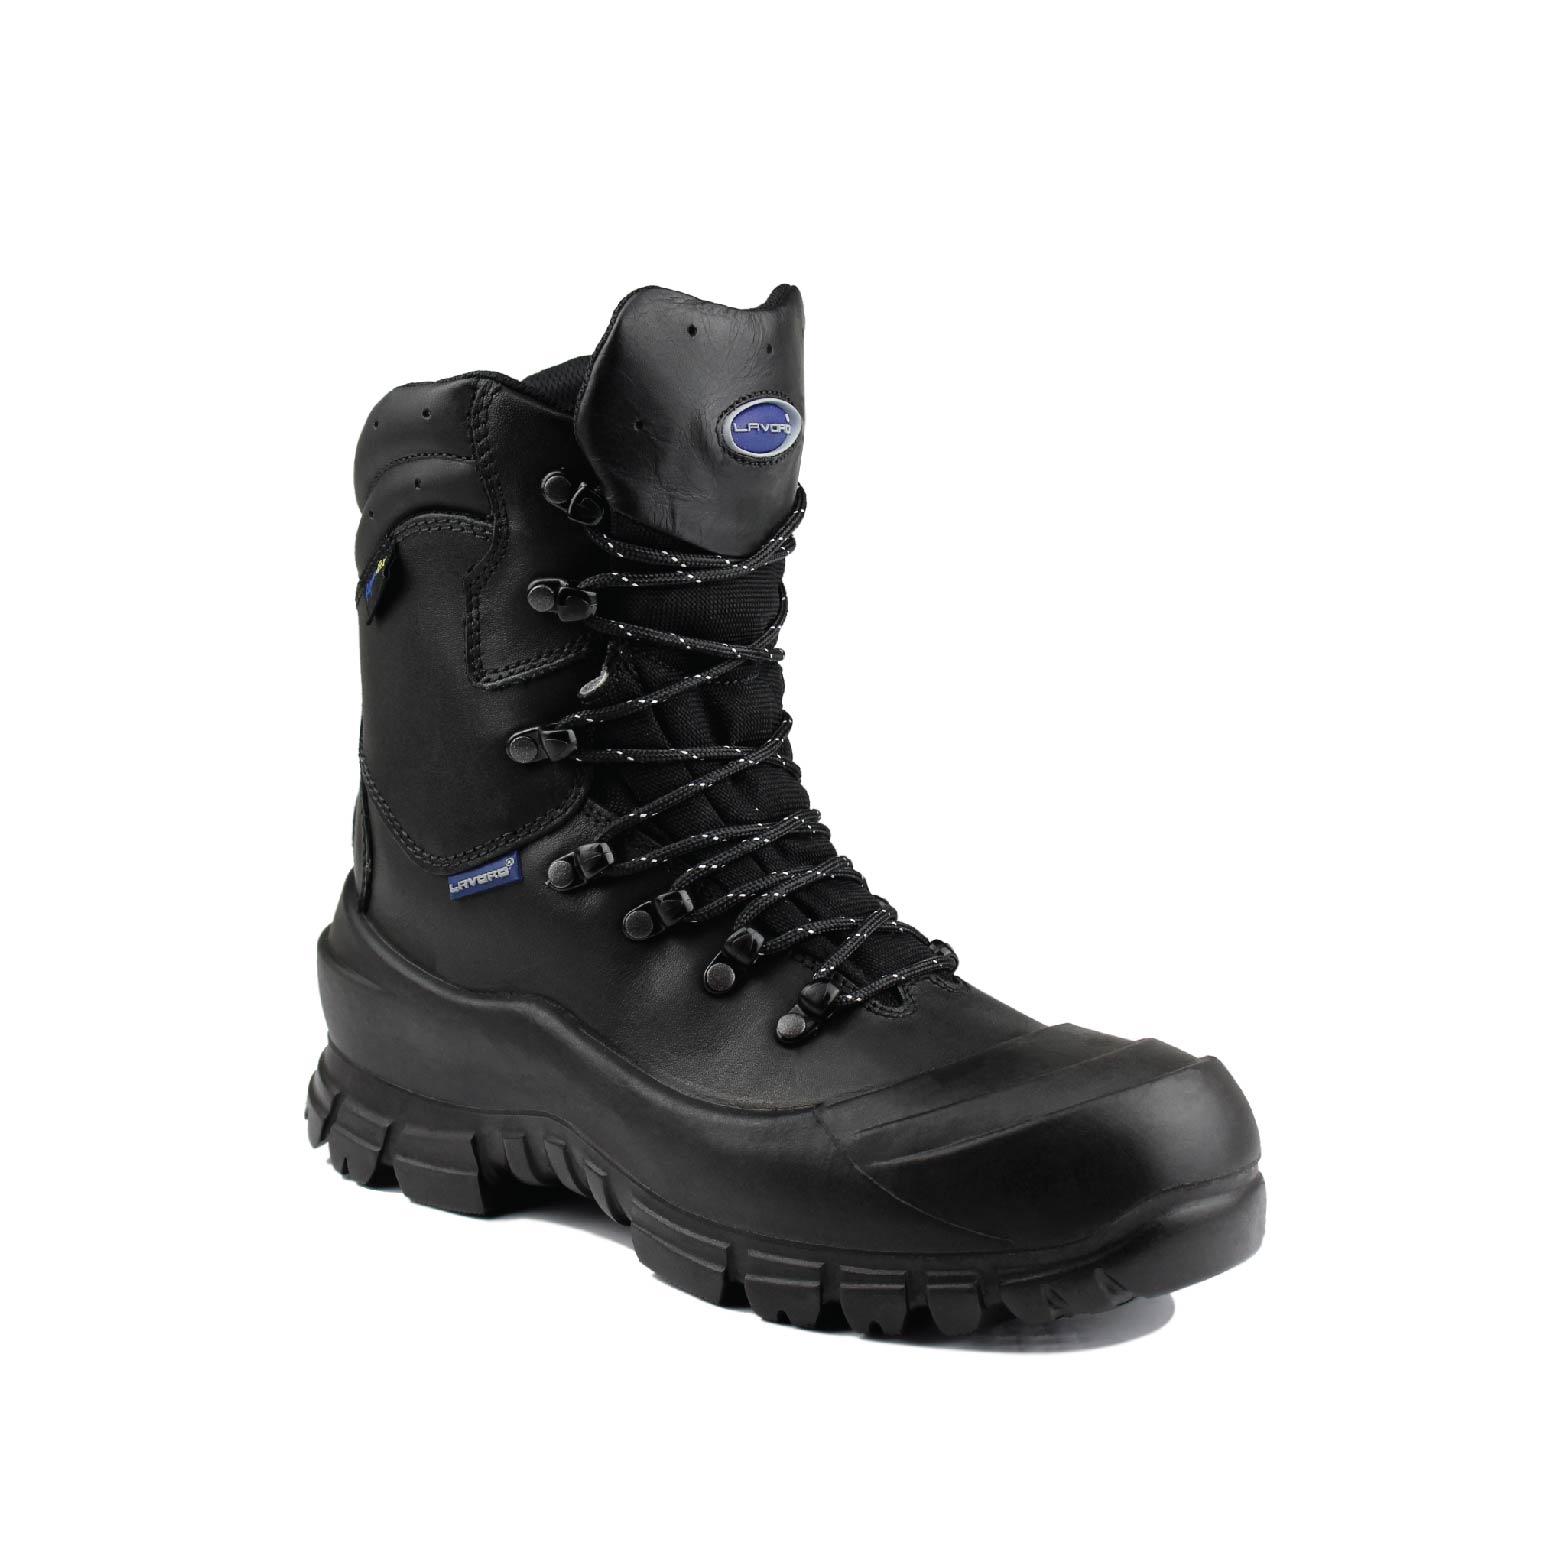 Exploration High S3 Clima Cork Safety Boots